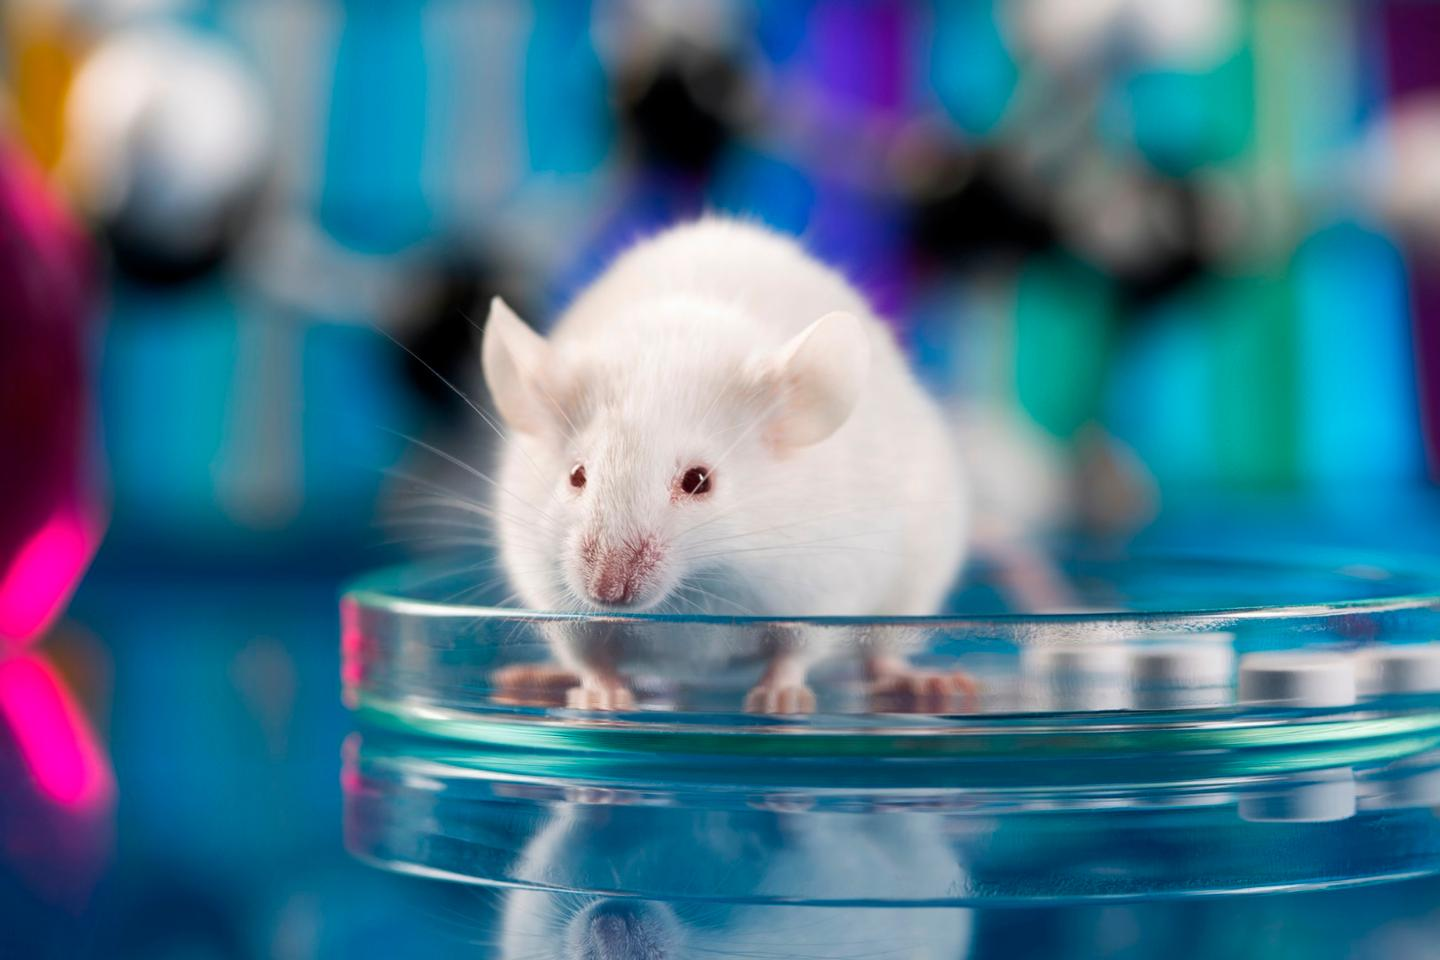 Blocking a single enzyme in mouse models has been found to completely inhibit the animal's ability to become obese